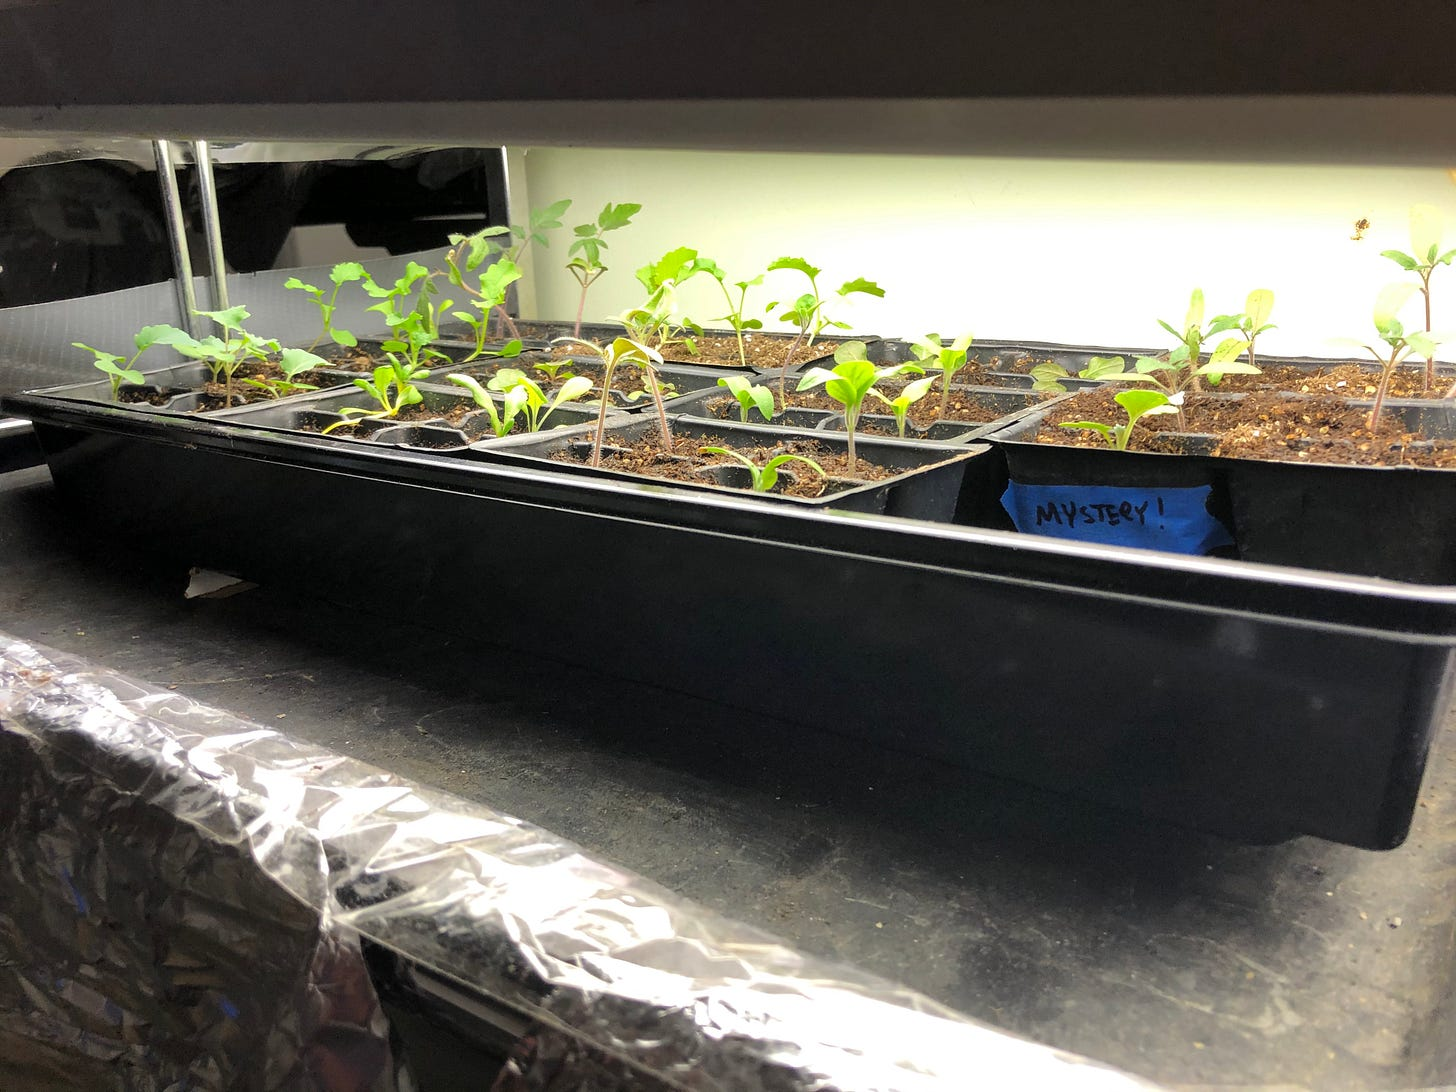 """A seedling tray full of small plants under a grow light. One of the cels has a piece of tape that has """"Mystery!"""" written on it."""